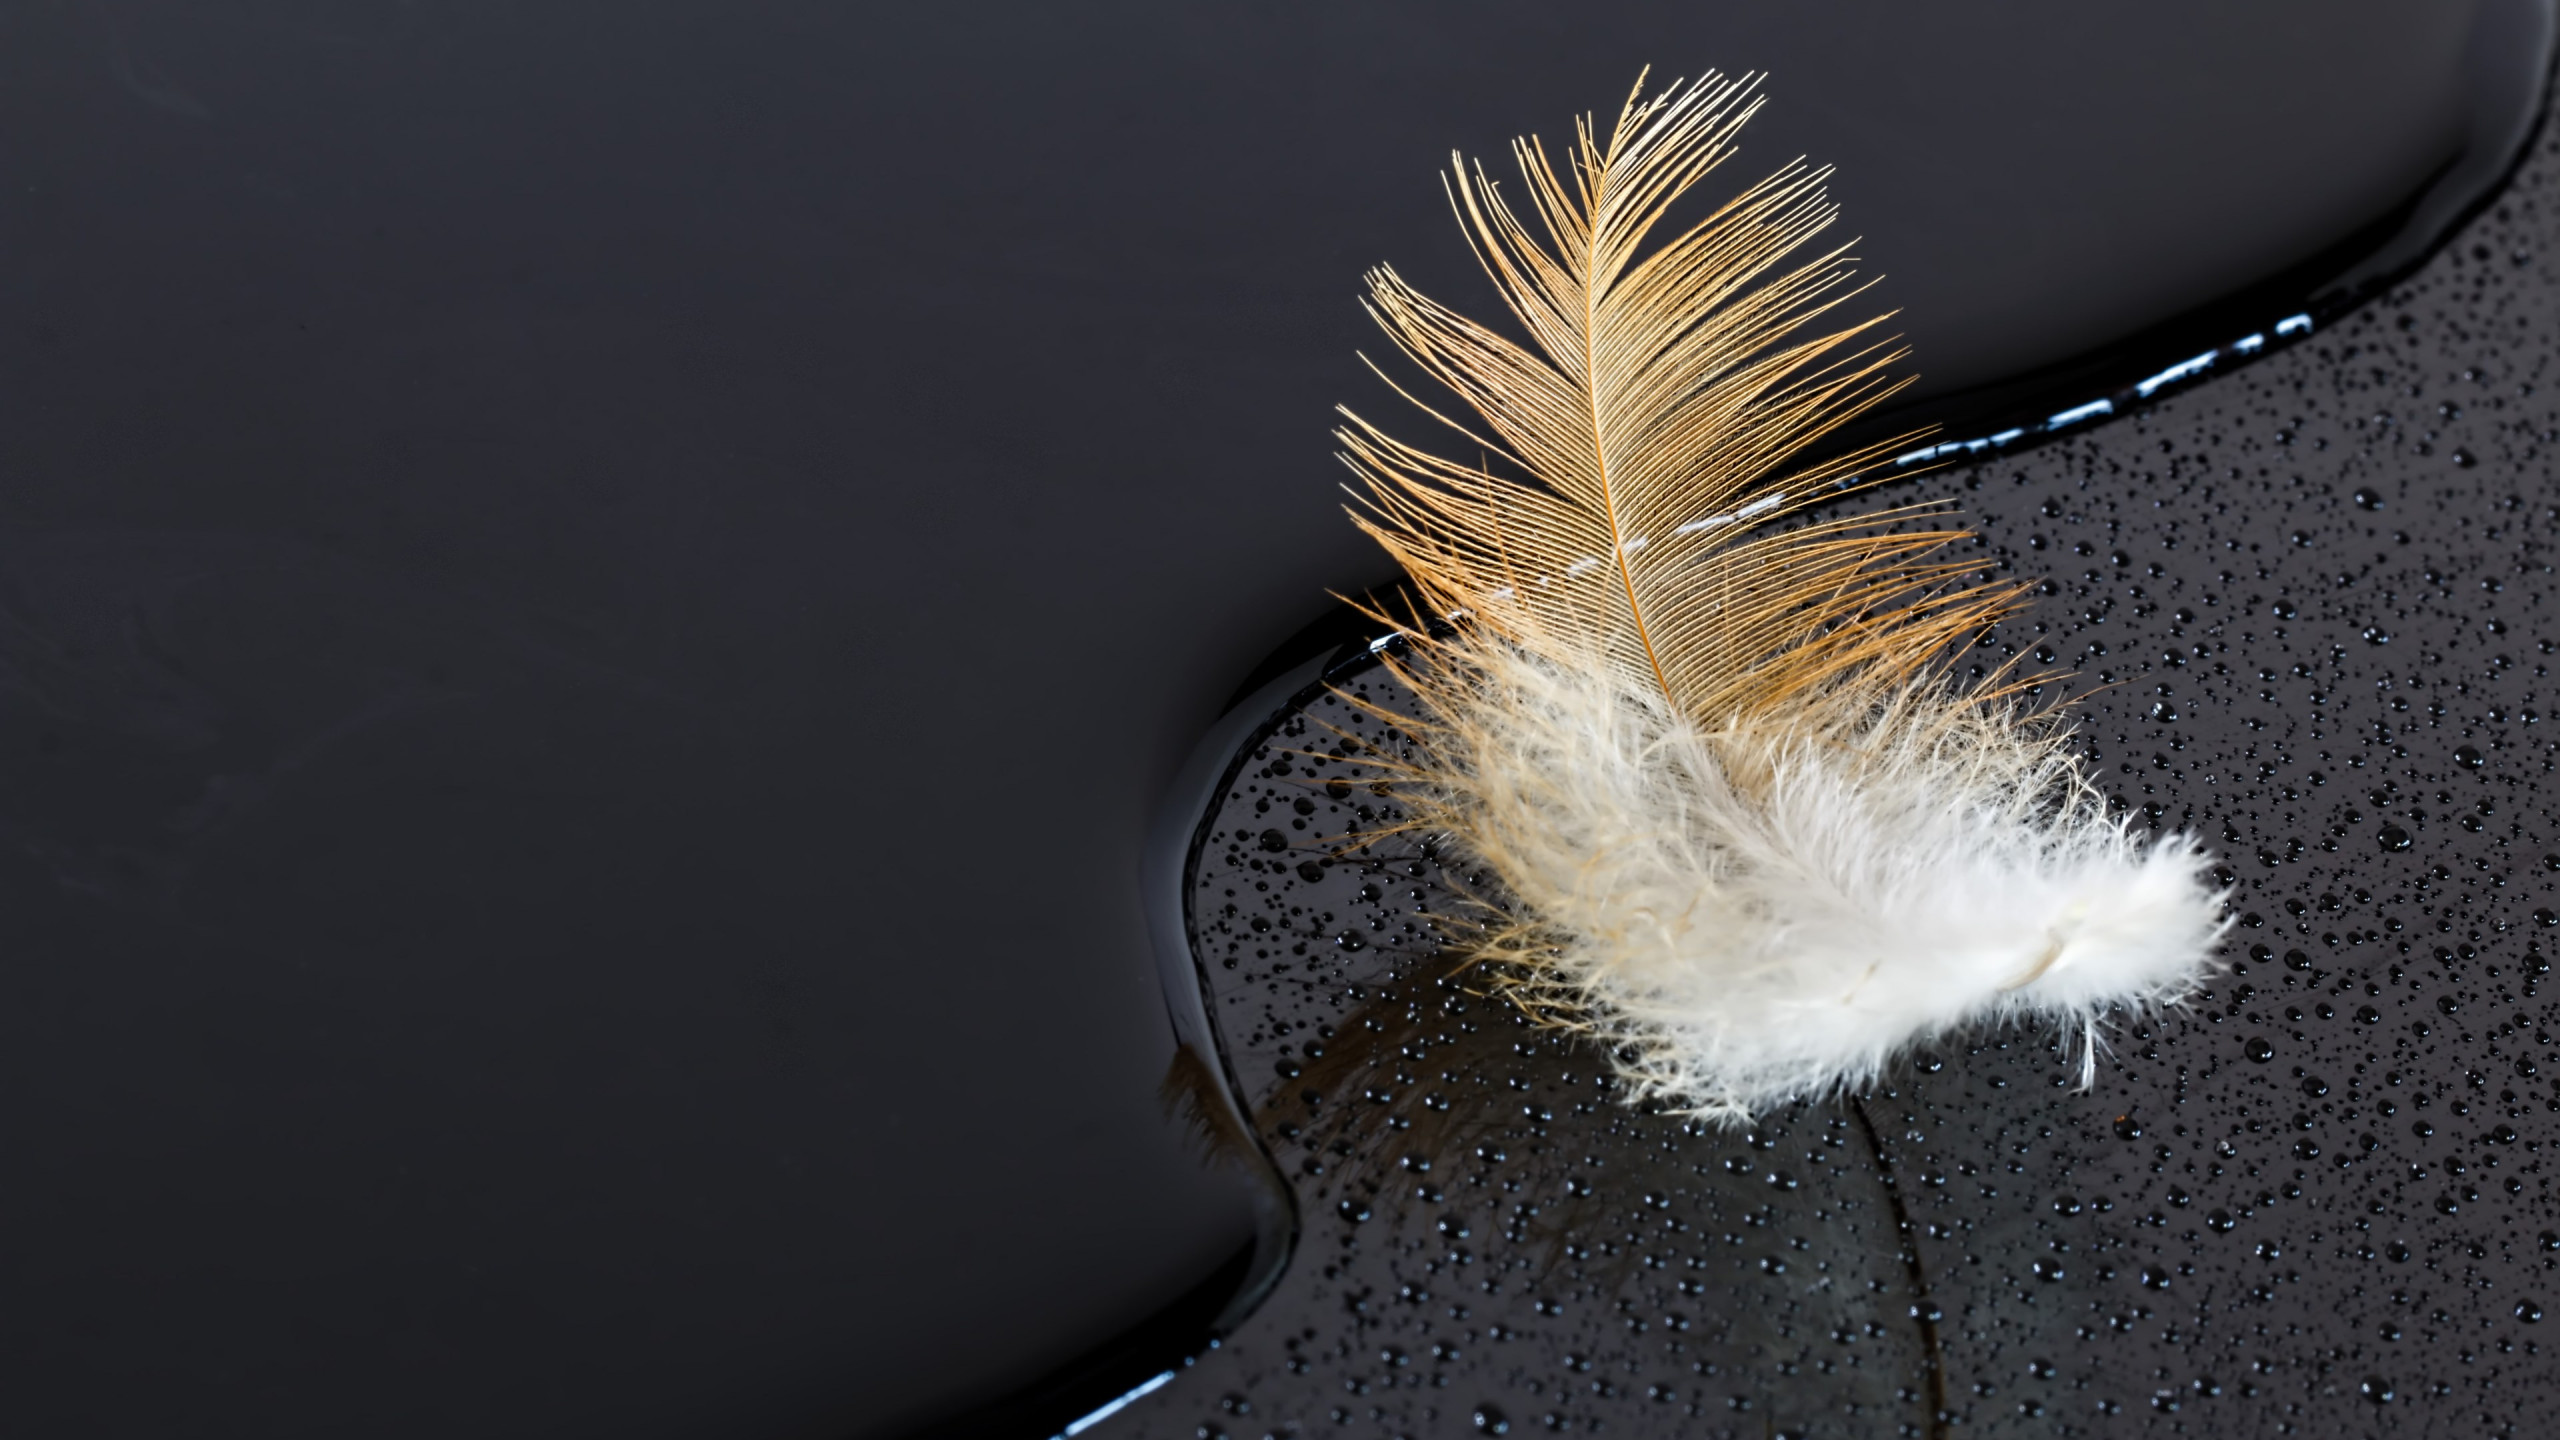 Dark surface with a feather on water wallpaper 2560x1440